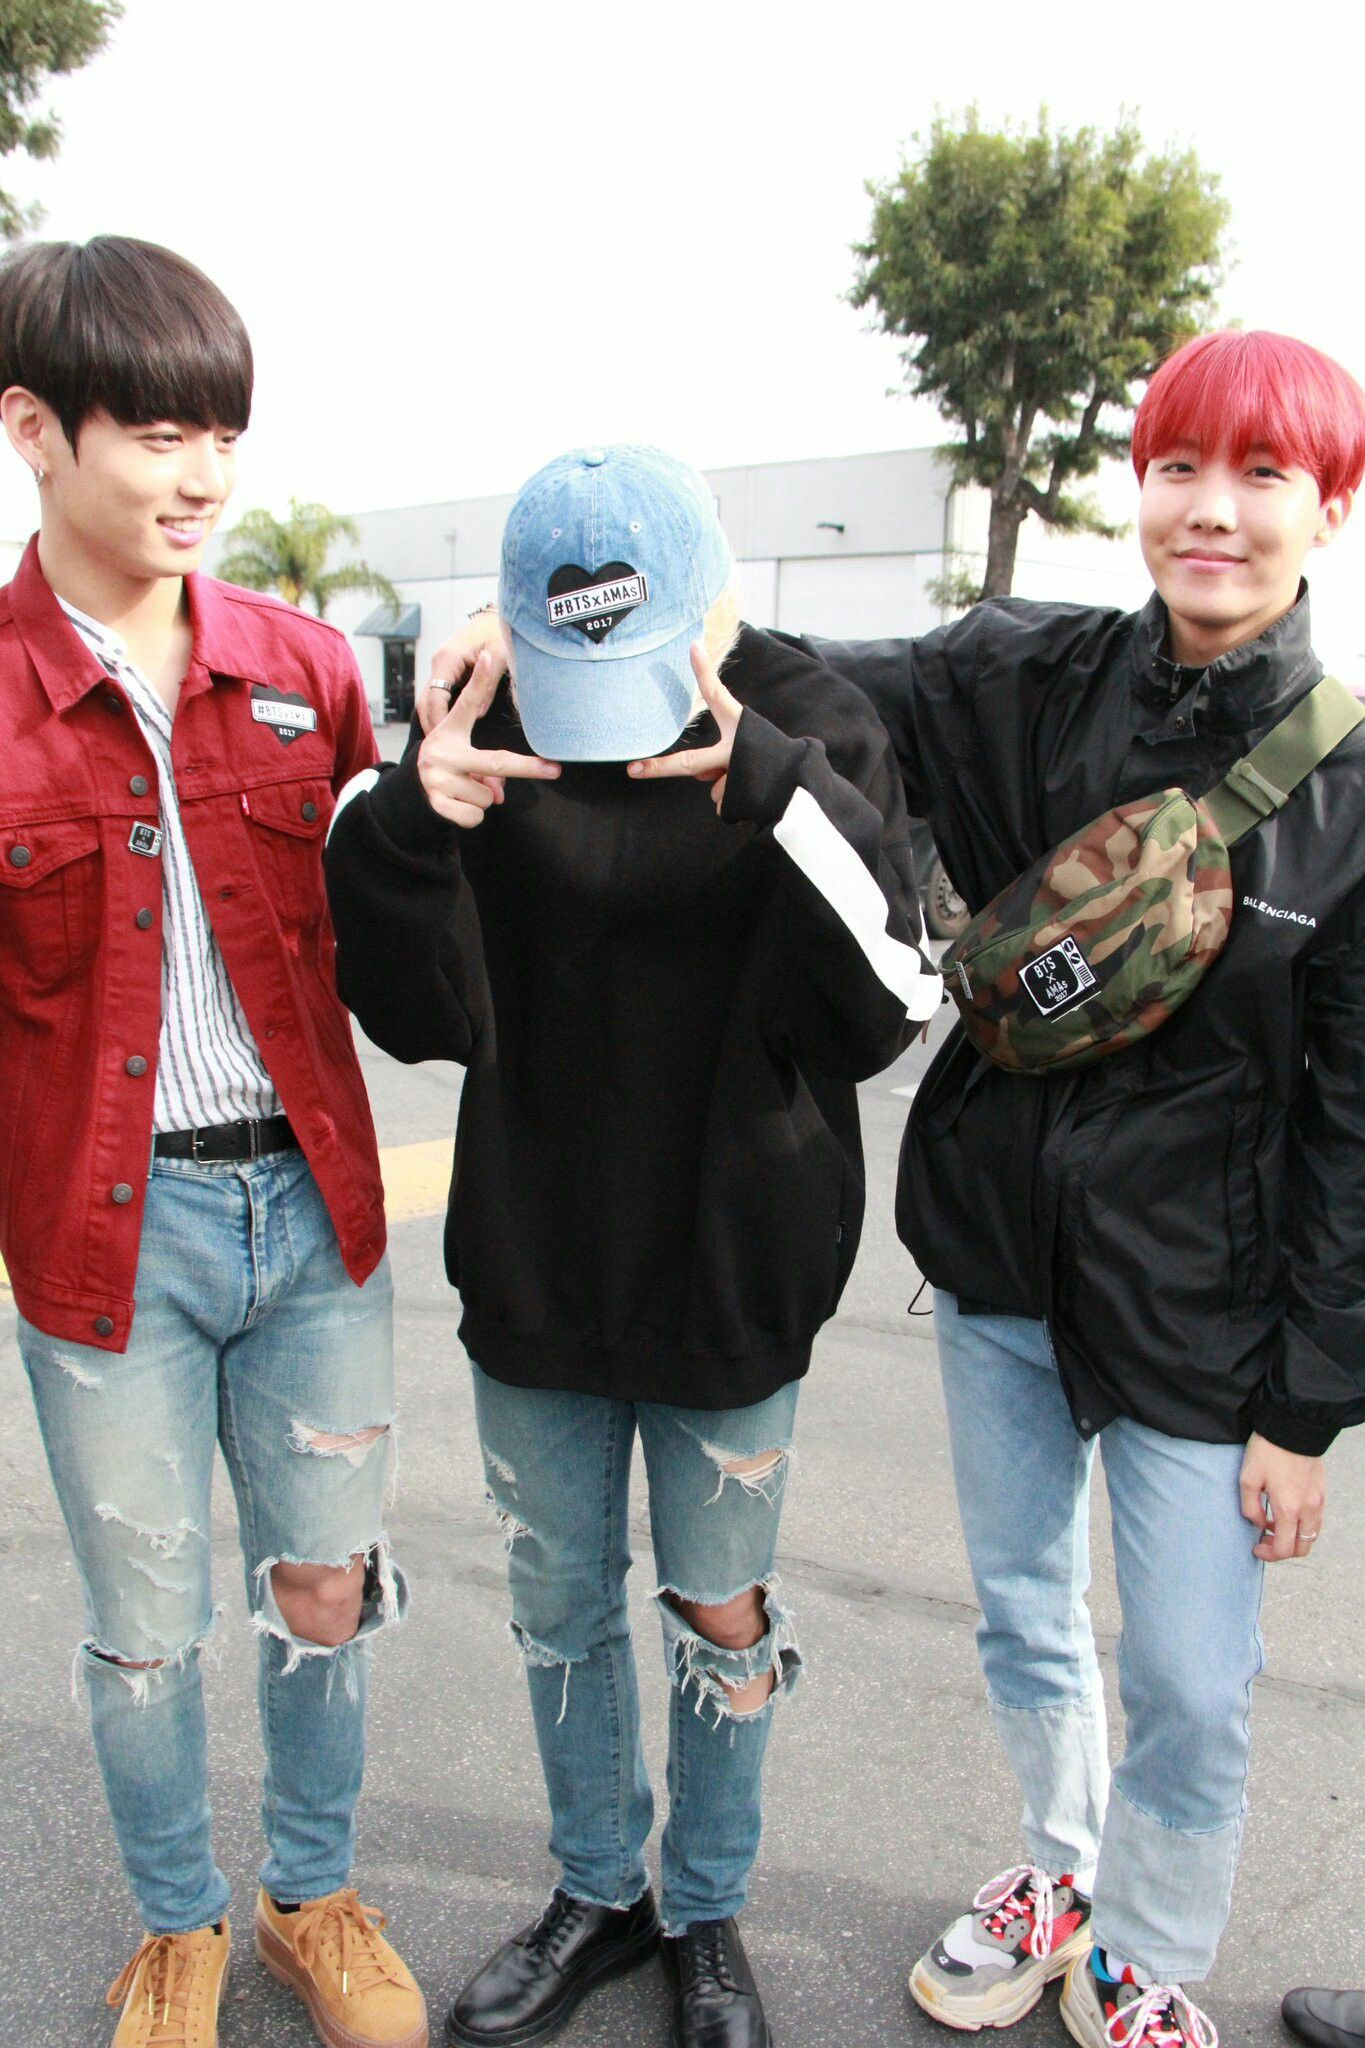 yo i dont rlly know what the fuck is going on with hobi and that disgusting shoulder fanny pack or smth bUT HE HELLA CUTE imma just mention how jungkook looks awfully boyfriend/daddy/oppa here